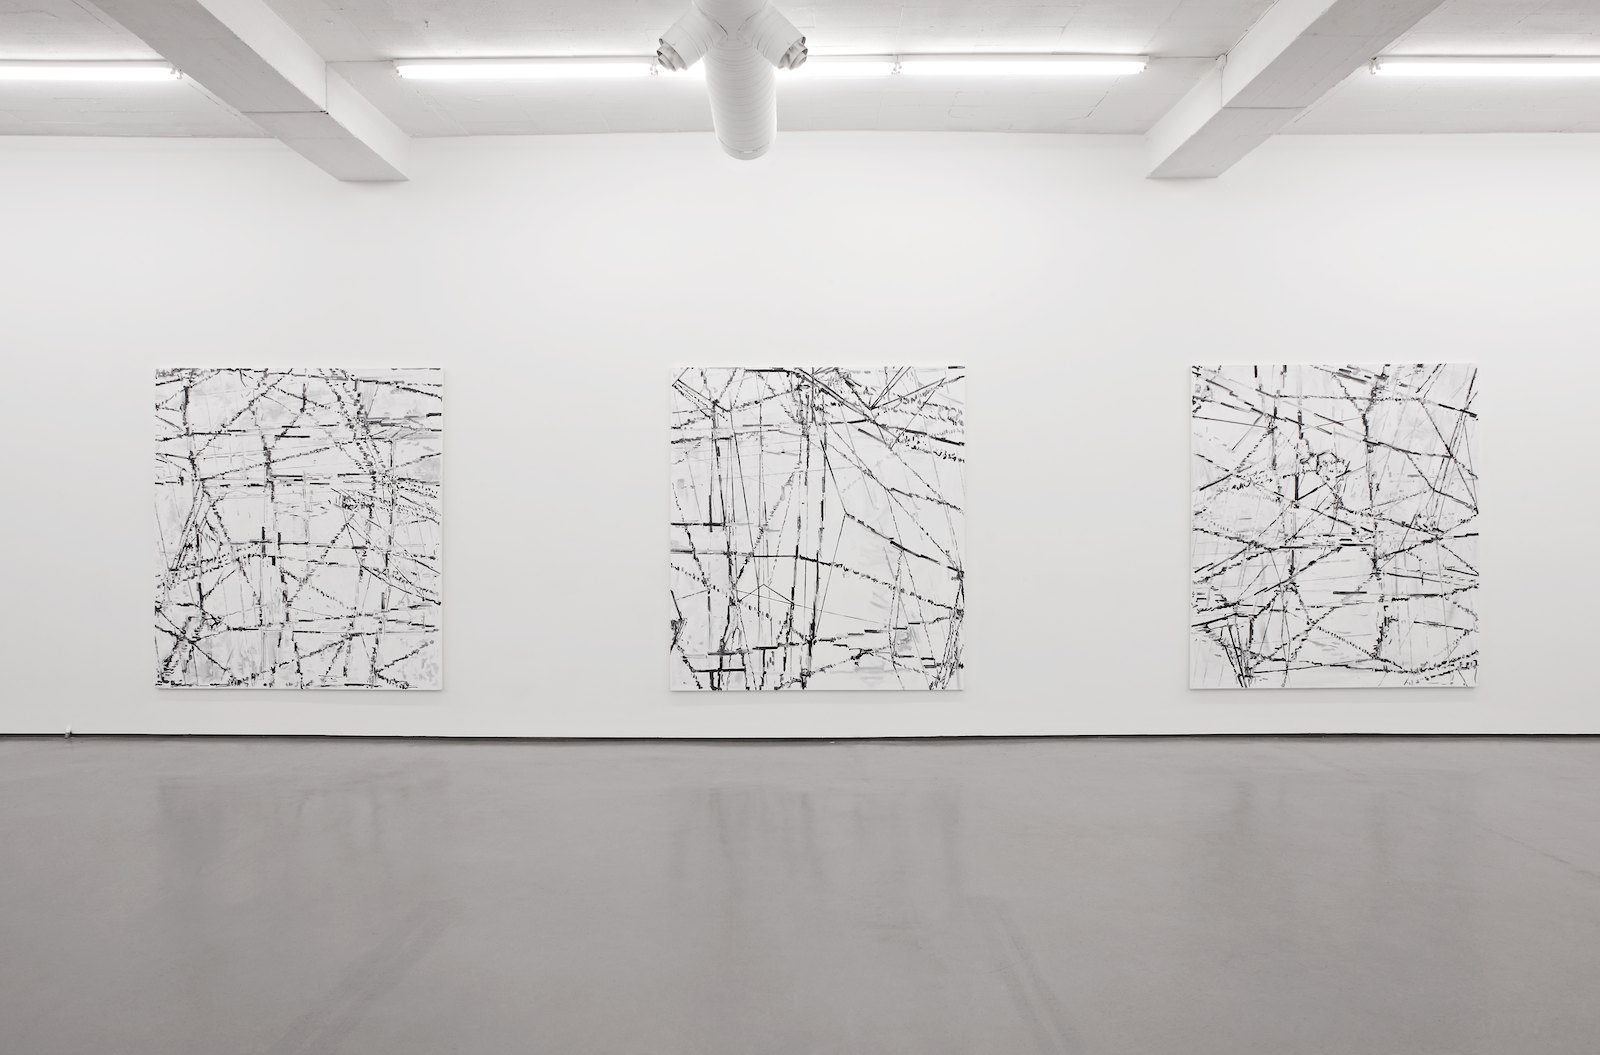 Installation view, Troels Wörsel, New paintings, Galleri Riis, Oslo, 2008